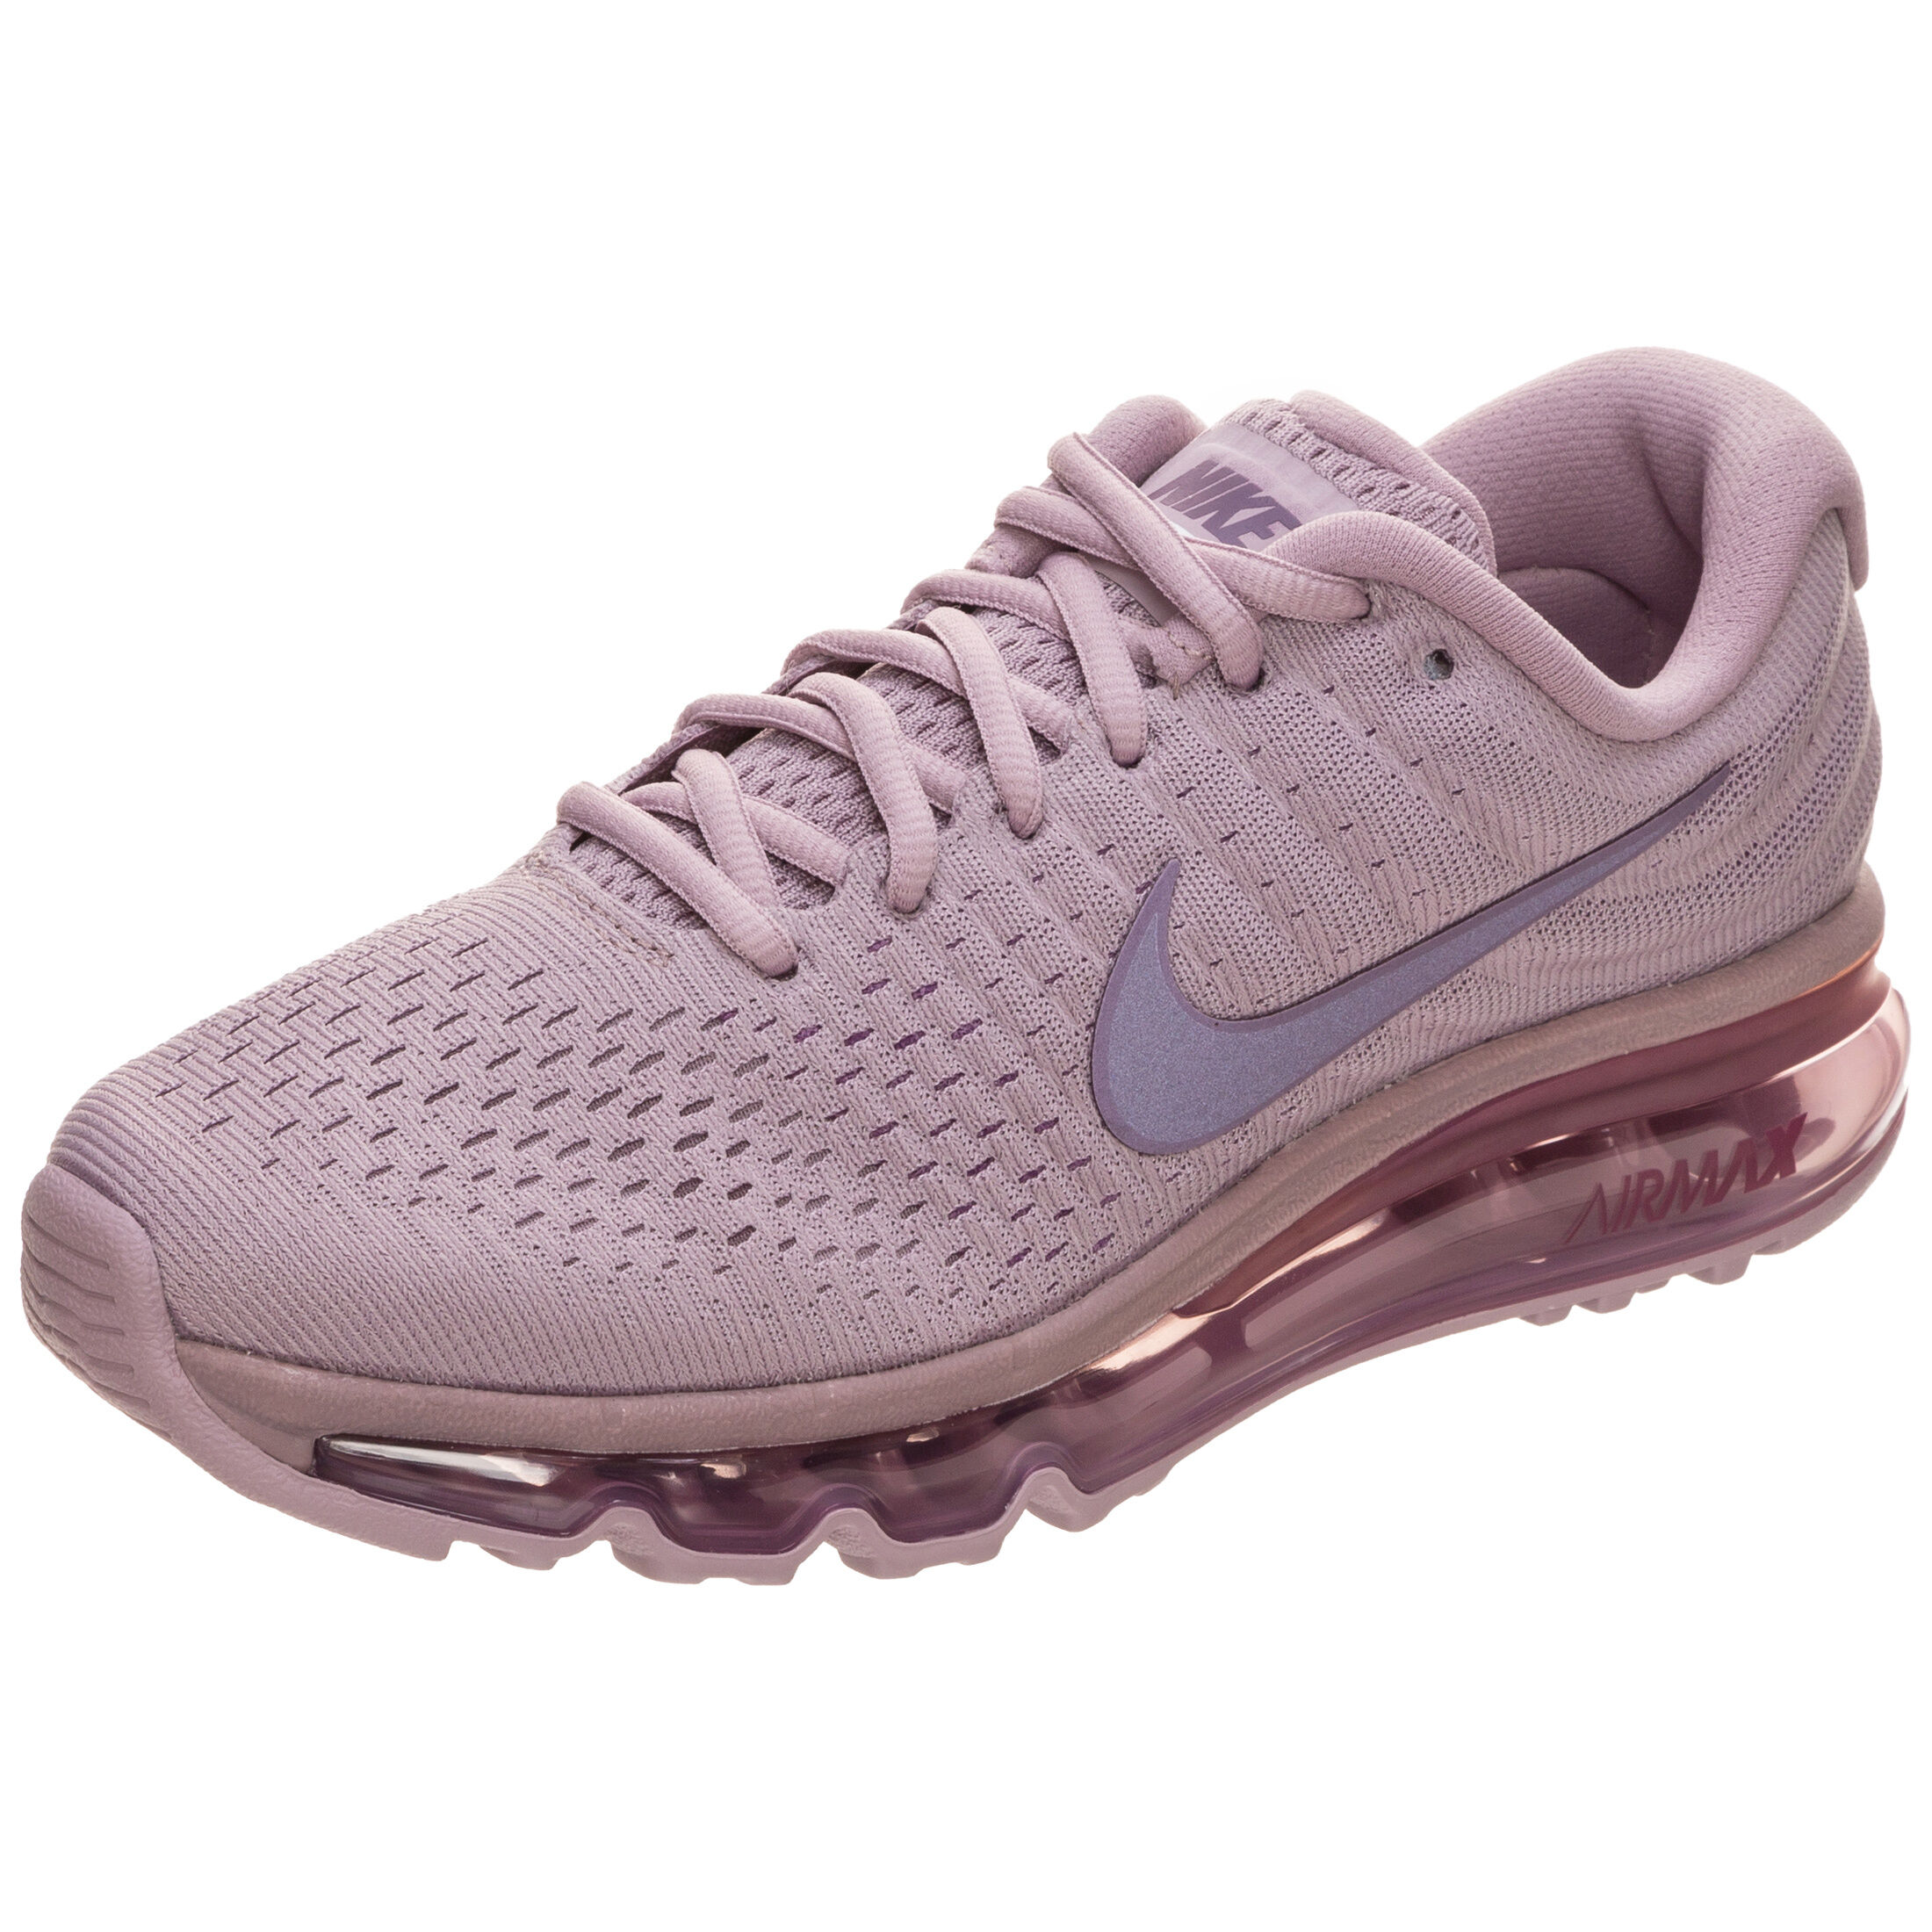 low priced 8bacd 6ab78 ... italy air max 2017 laufschuh damen lila zoom bei outfitter online 74527  c0390